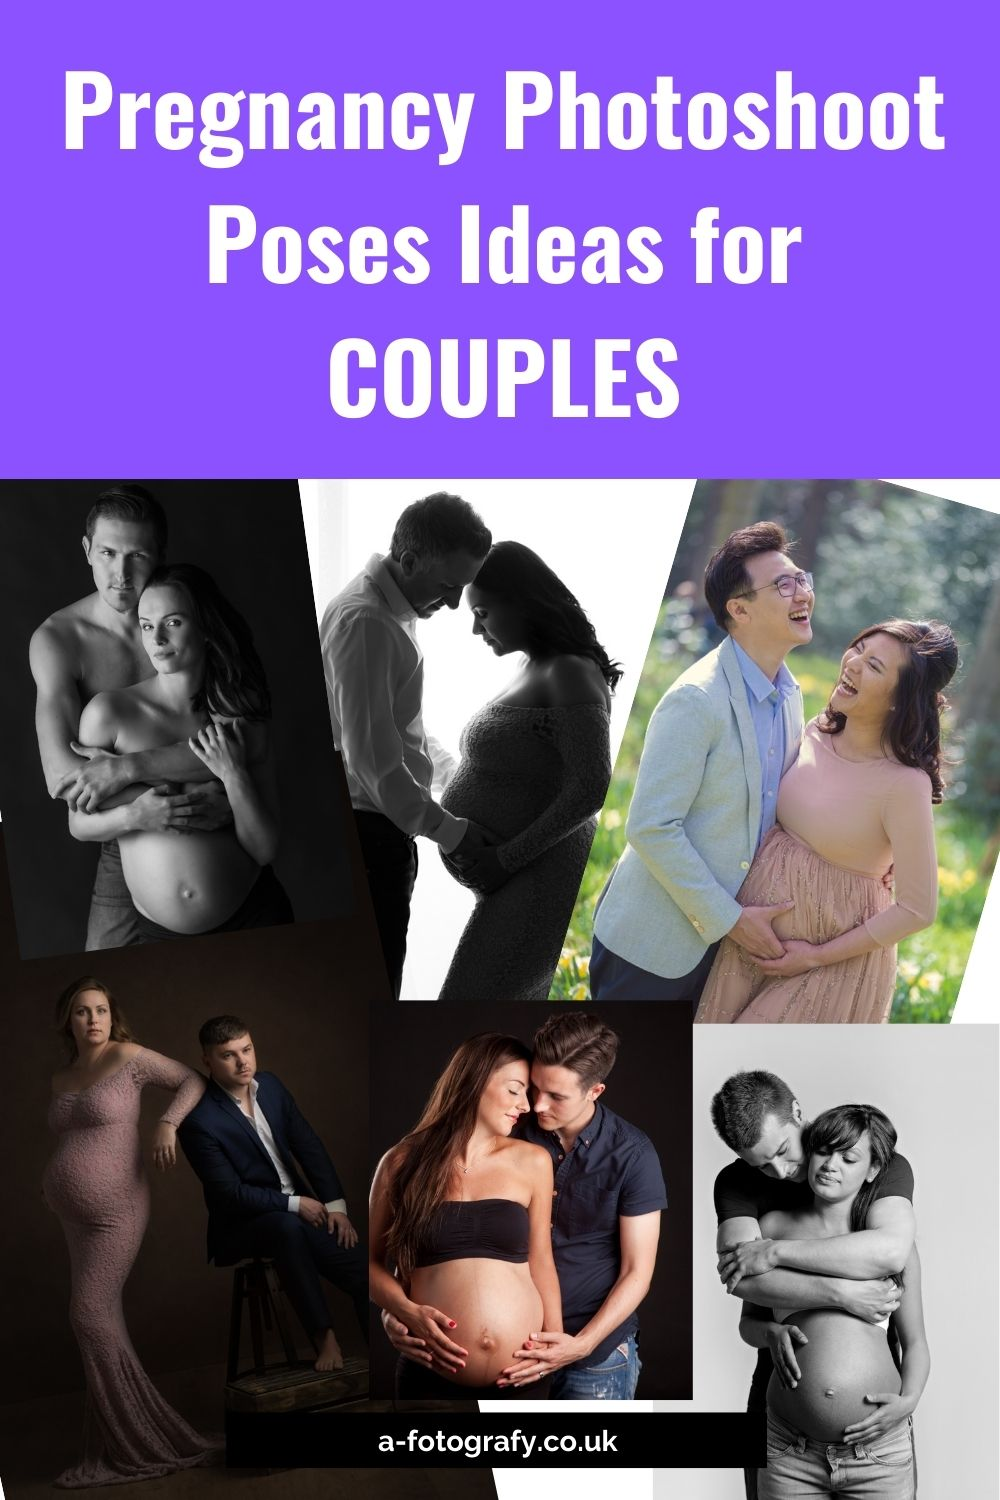 Pregnancy couples photoshoot poses ideas